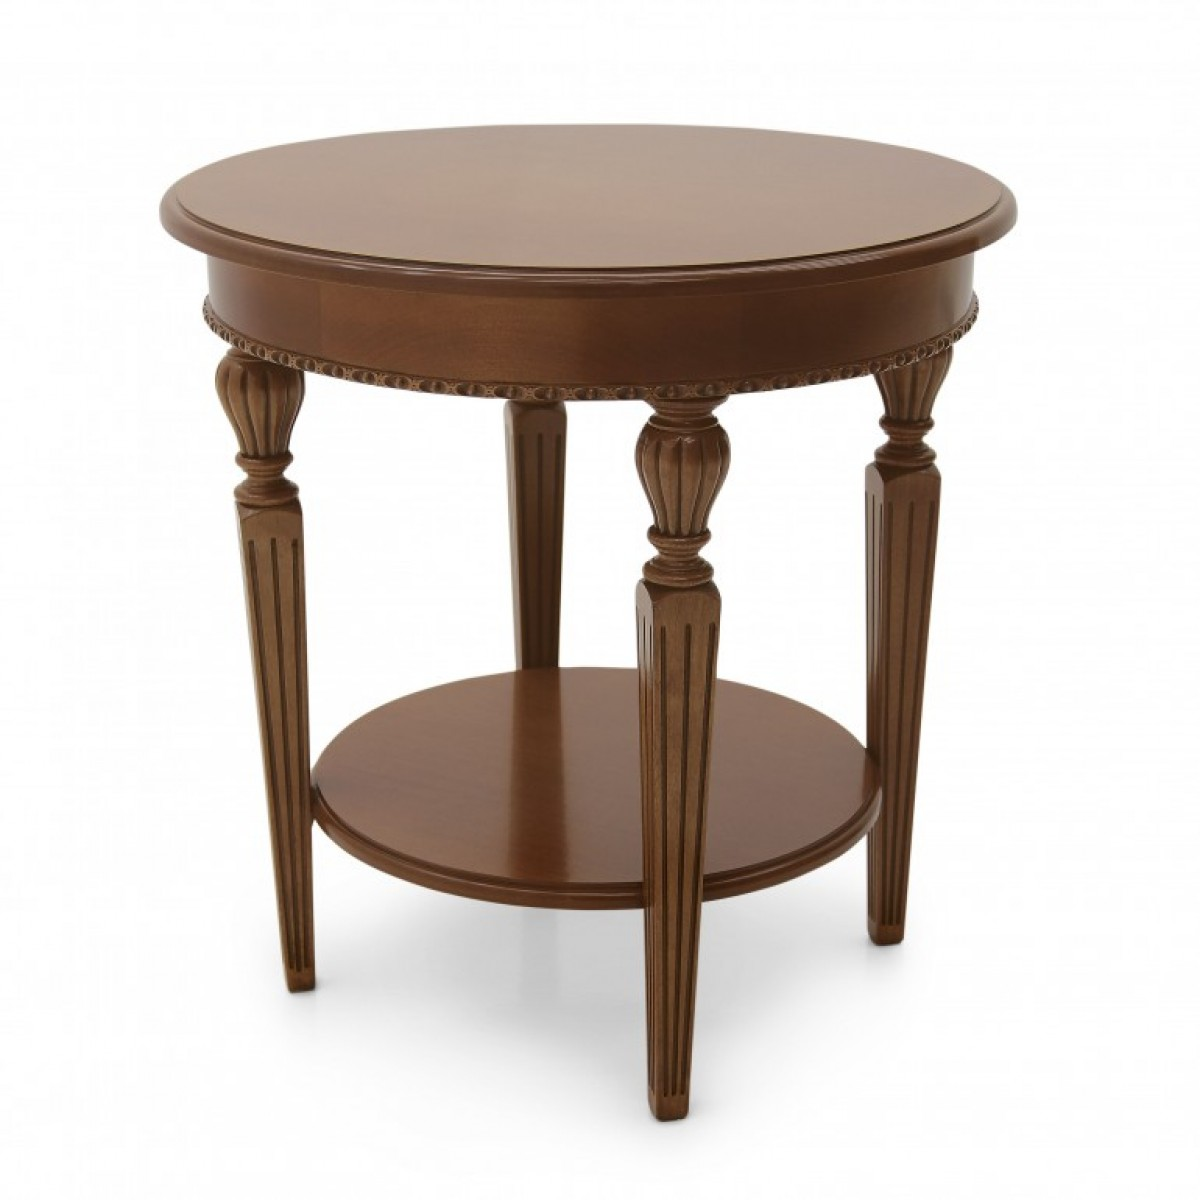 8271 classic style wood table sinone 6923